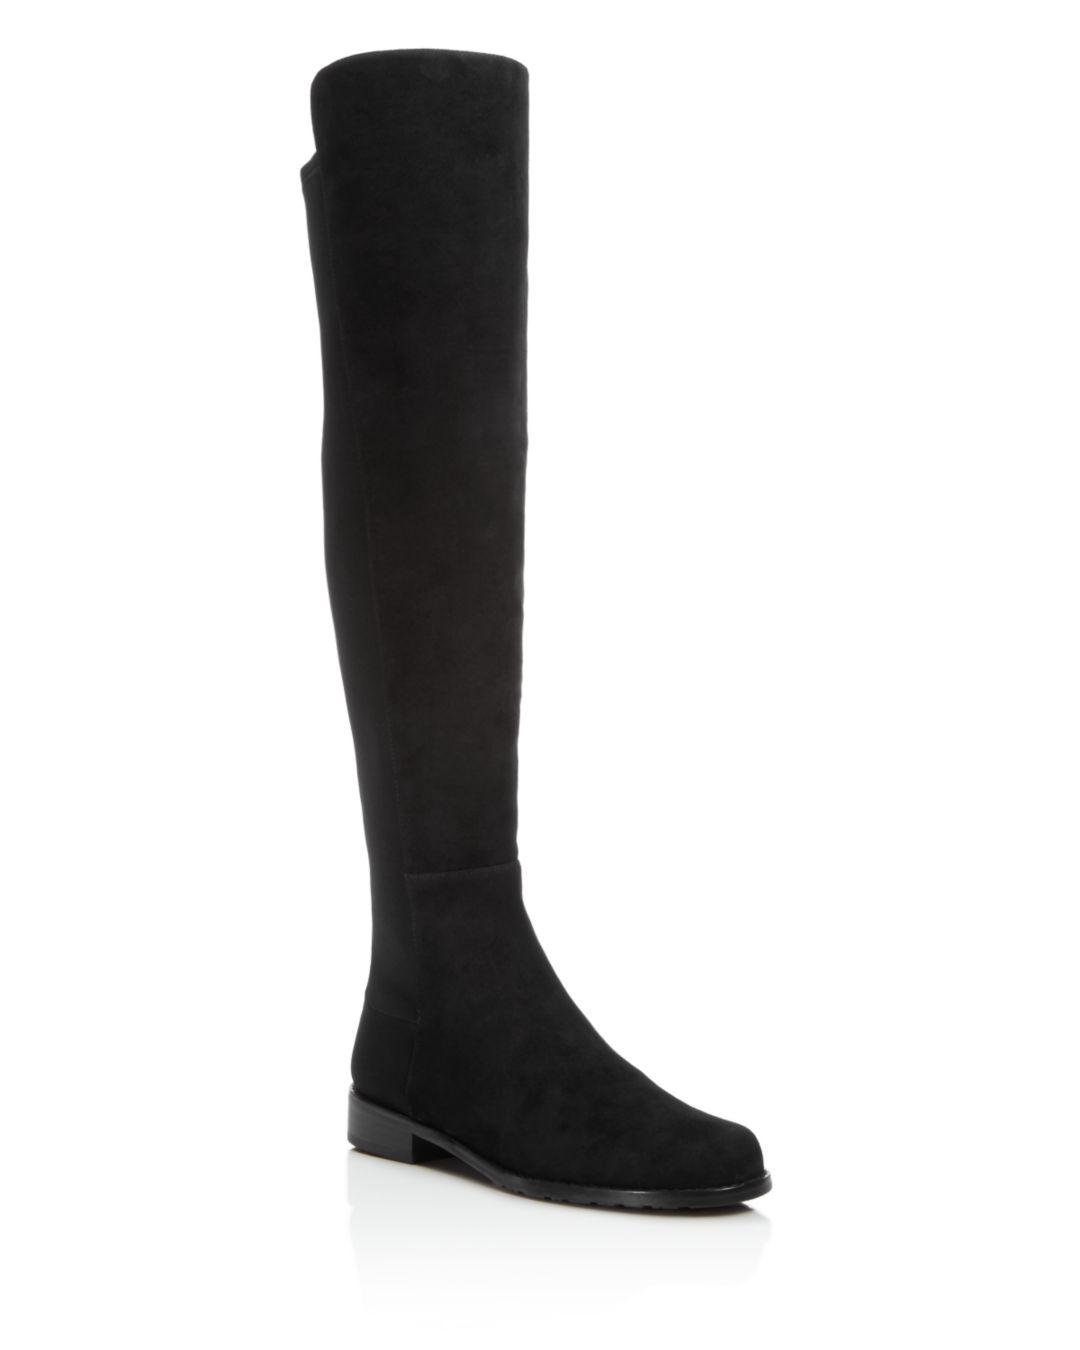 ffd03c7c0d5 Lyst - Stuart Weitzman Women s 5050 Over The Knee Boots in Black